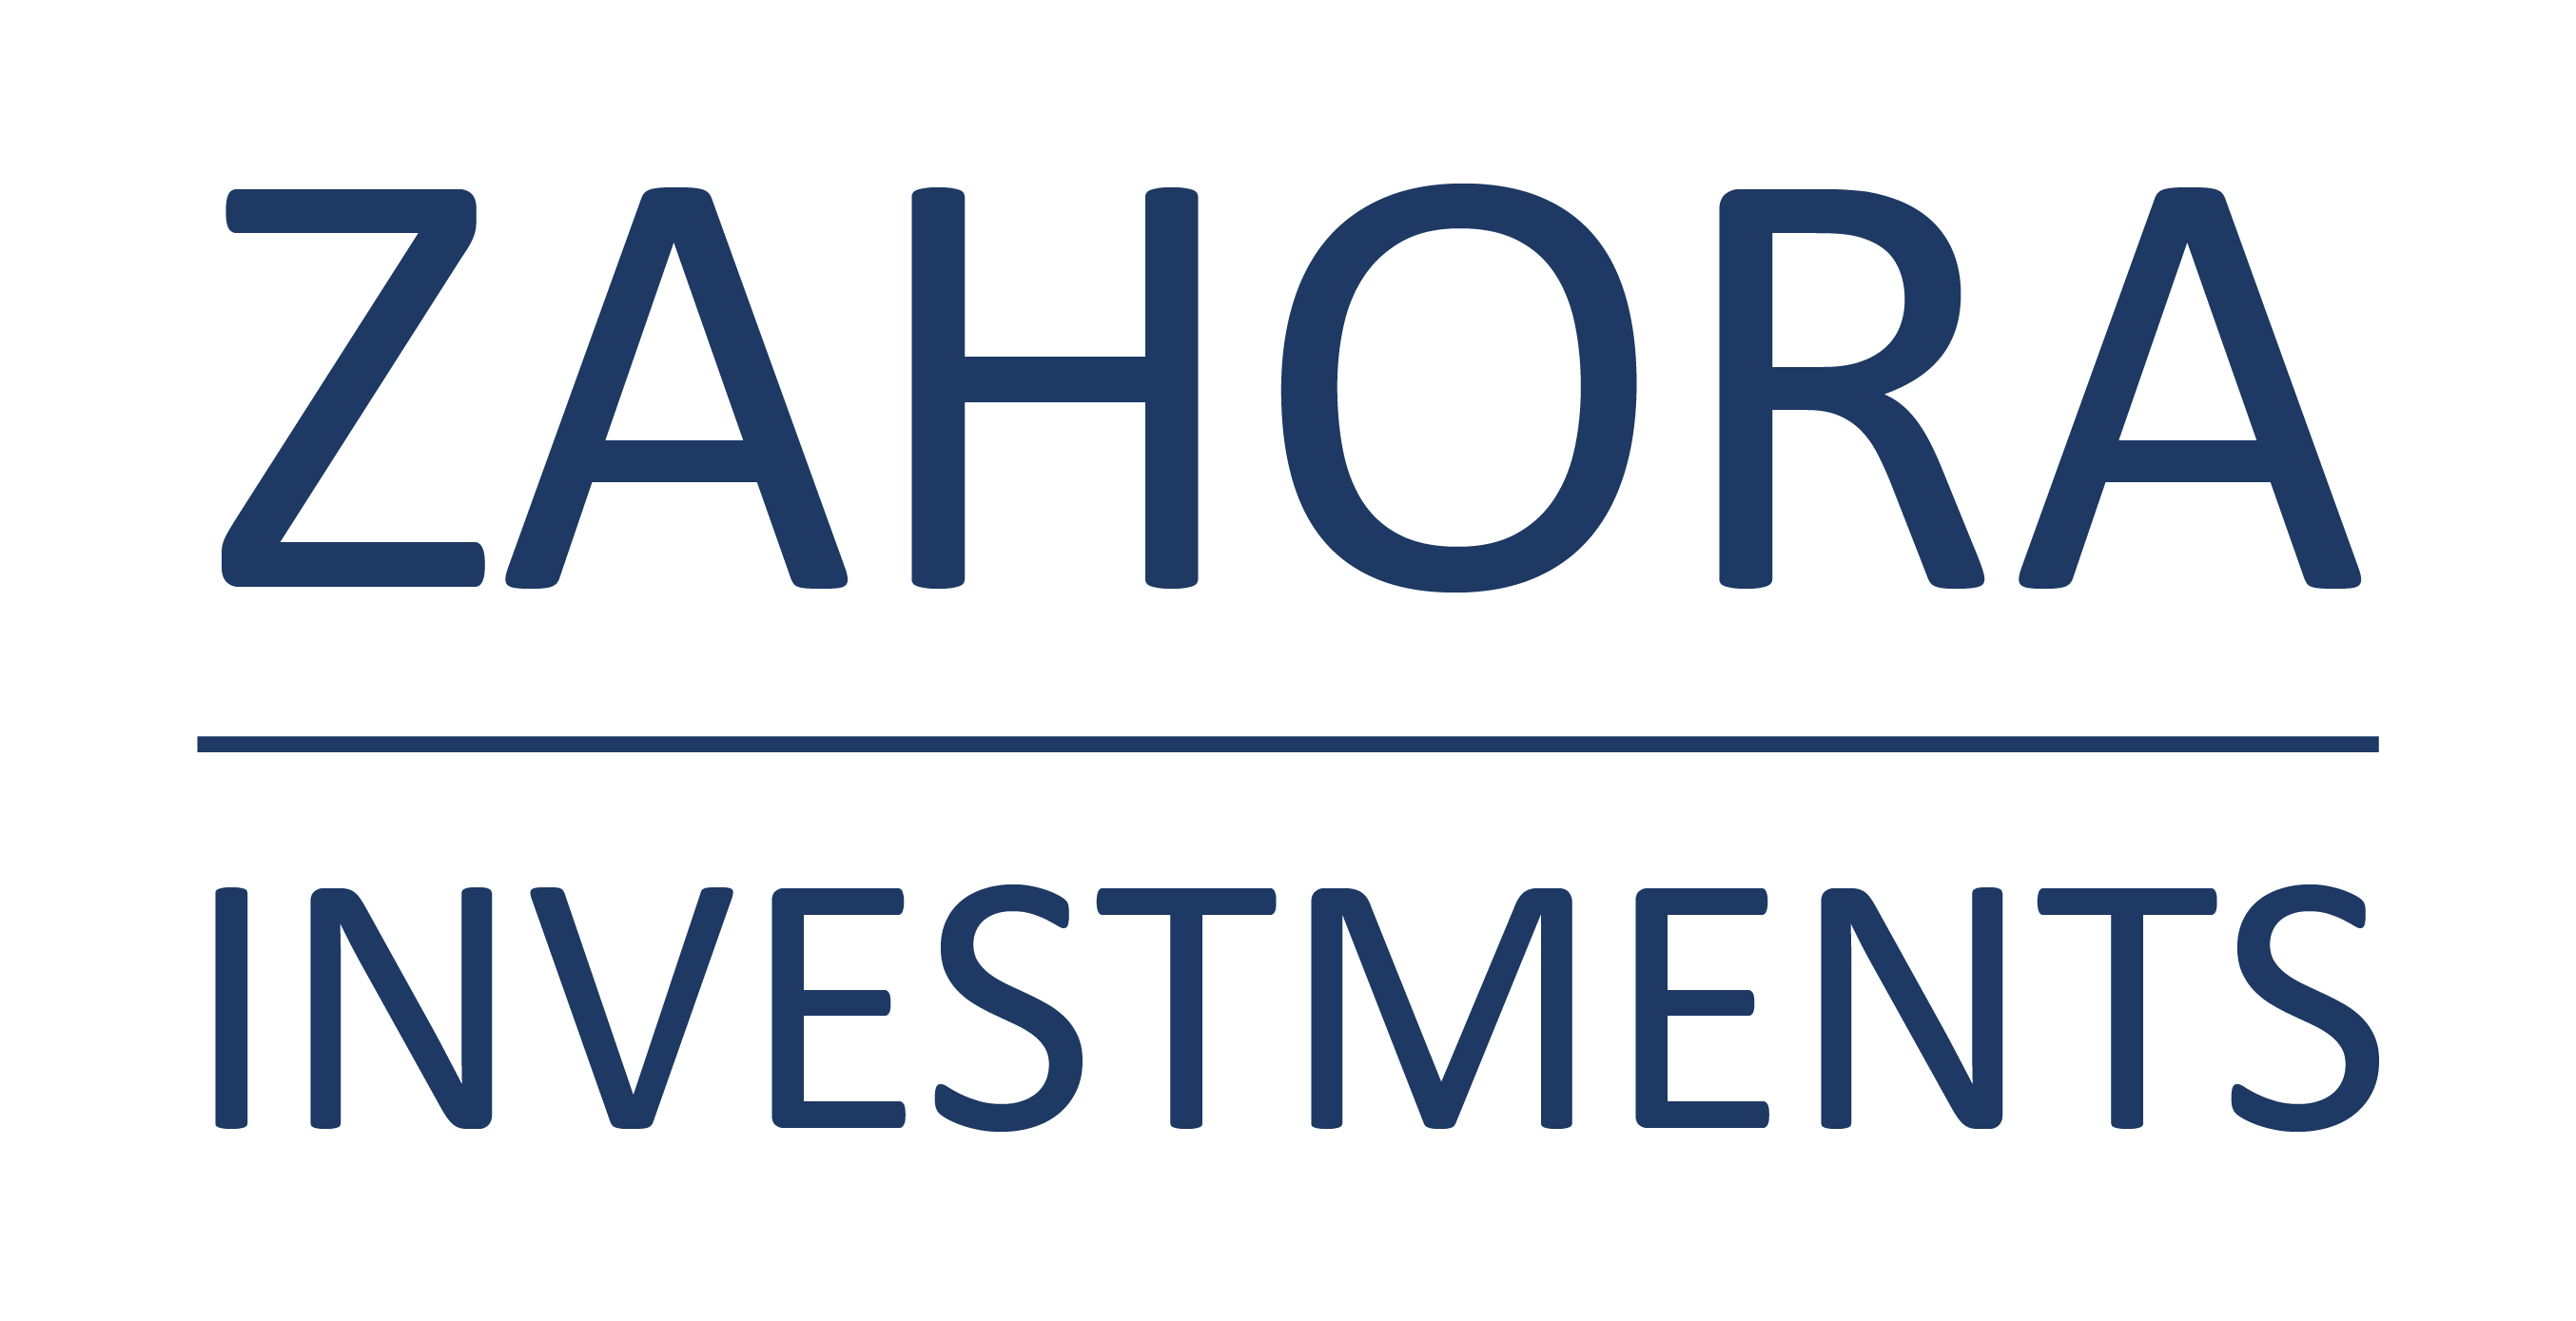 Zahora Investments s.r.o.